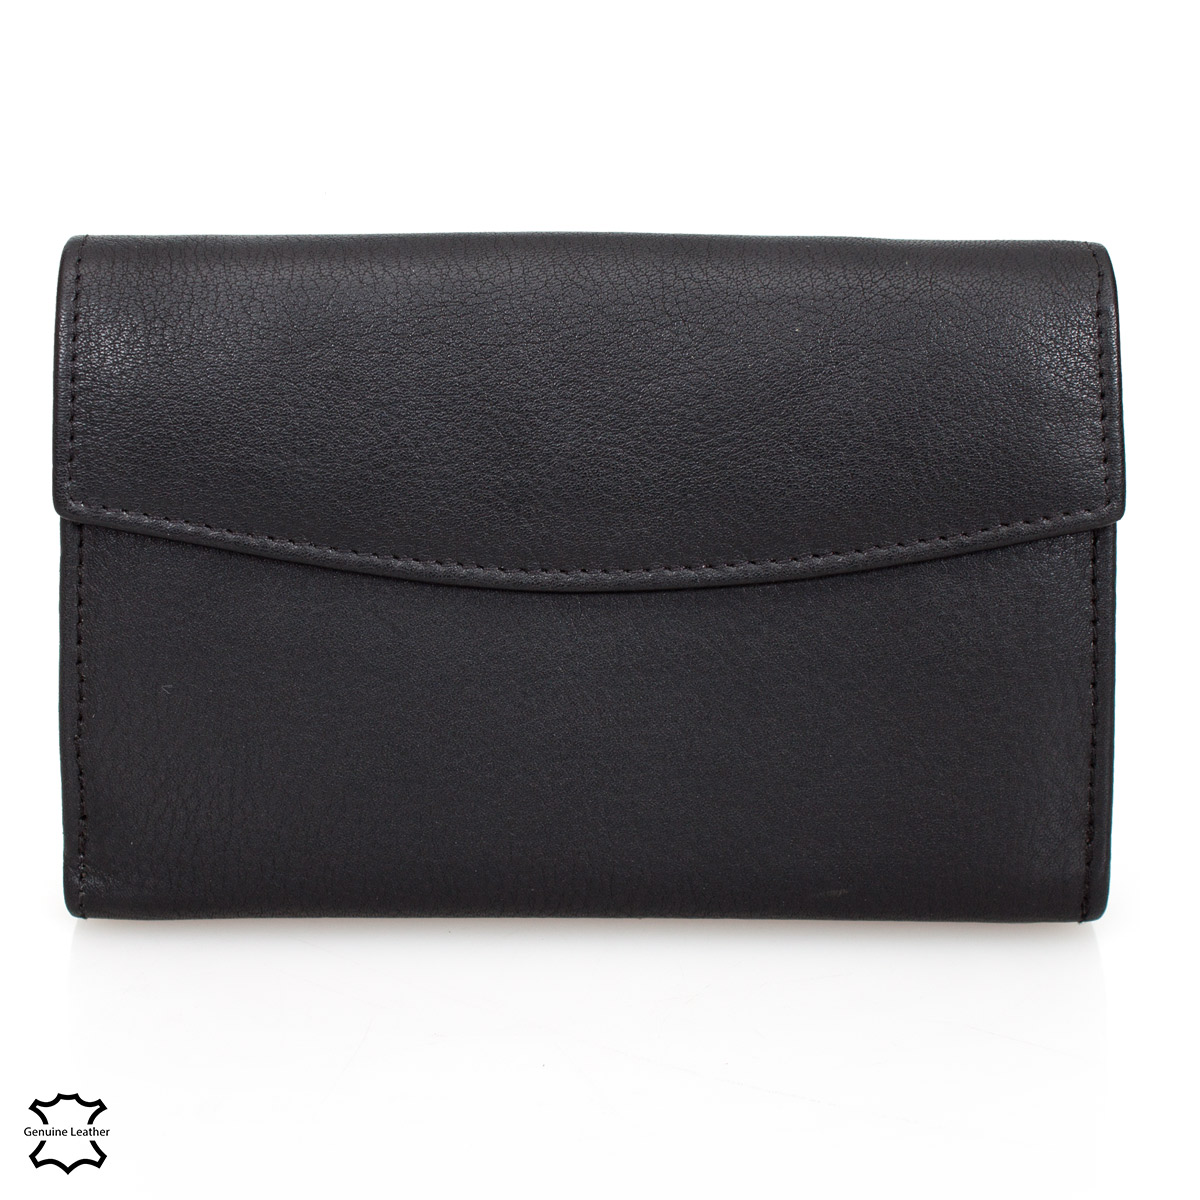 DELBAG Womens Leather Wallet 14cm Black – image 3